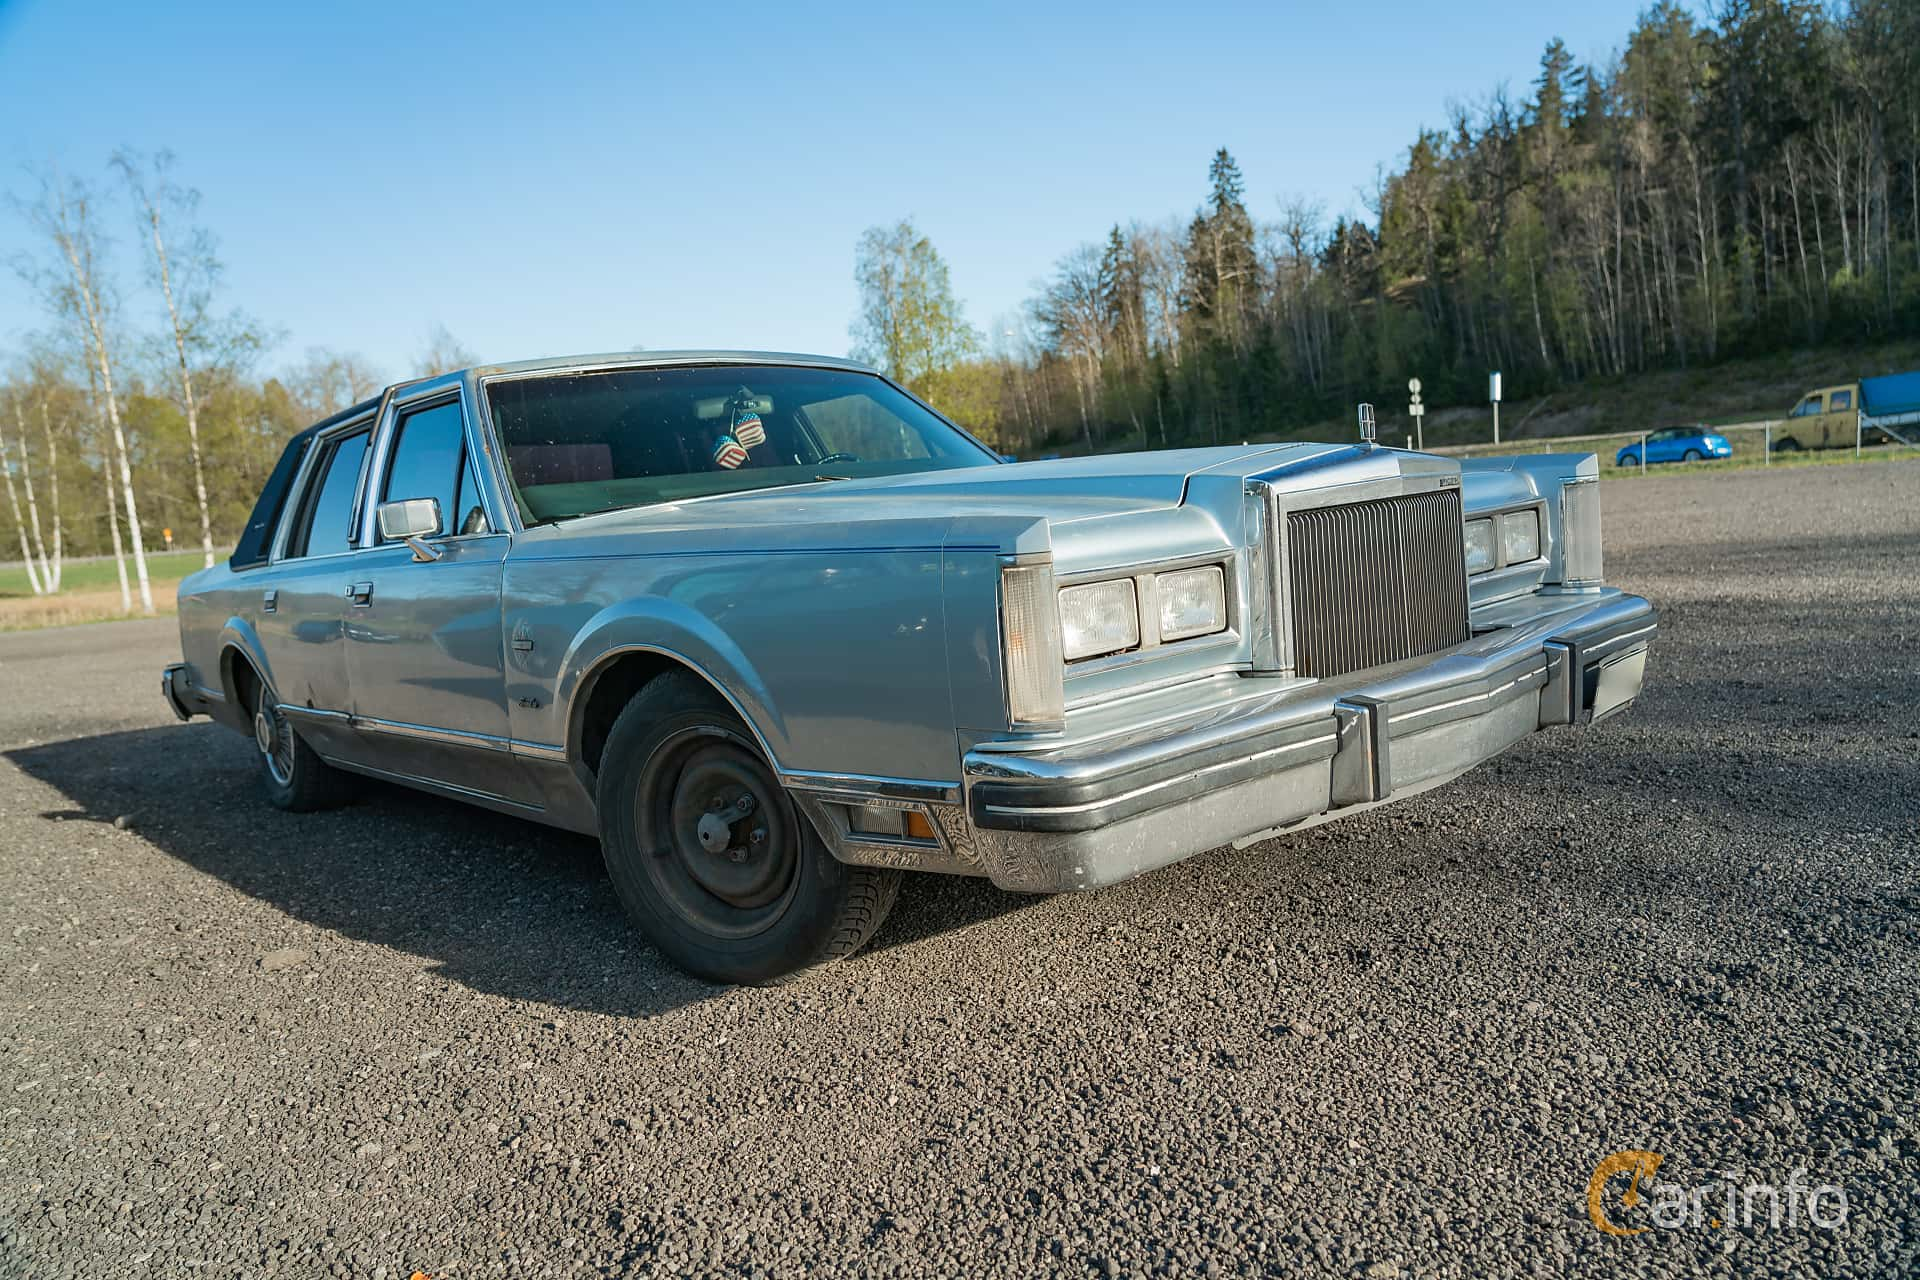 Lincoln Town Car 4-dörrar 4.9 V8 Automatisk, 142hk, 1984 at Lissma Classic Car 2019 vecka 20